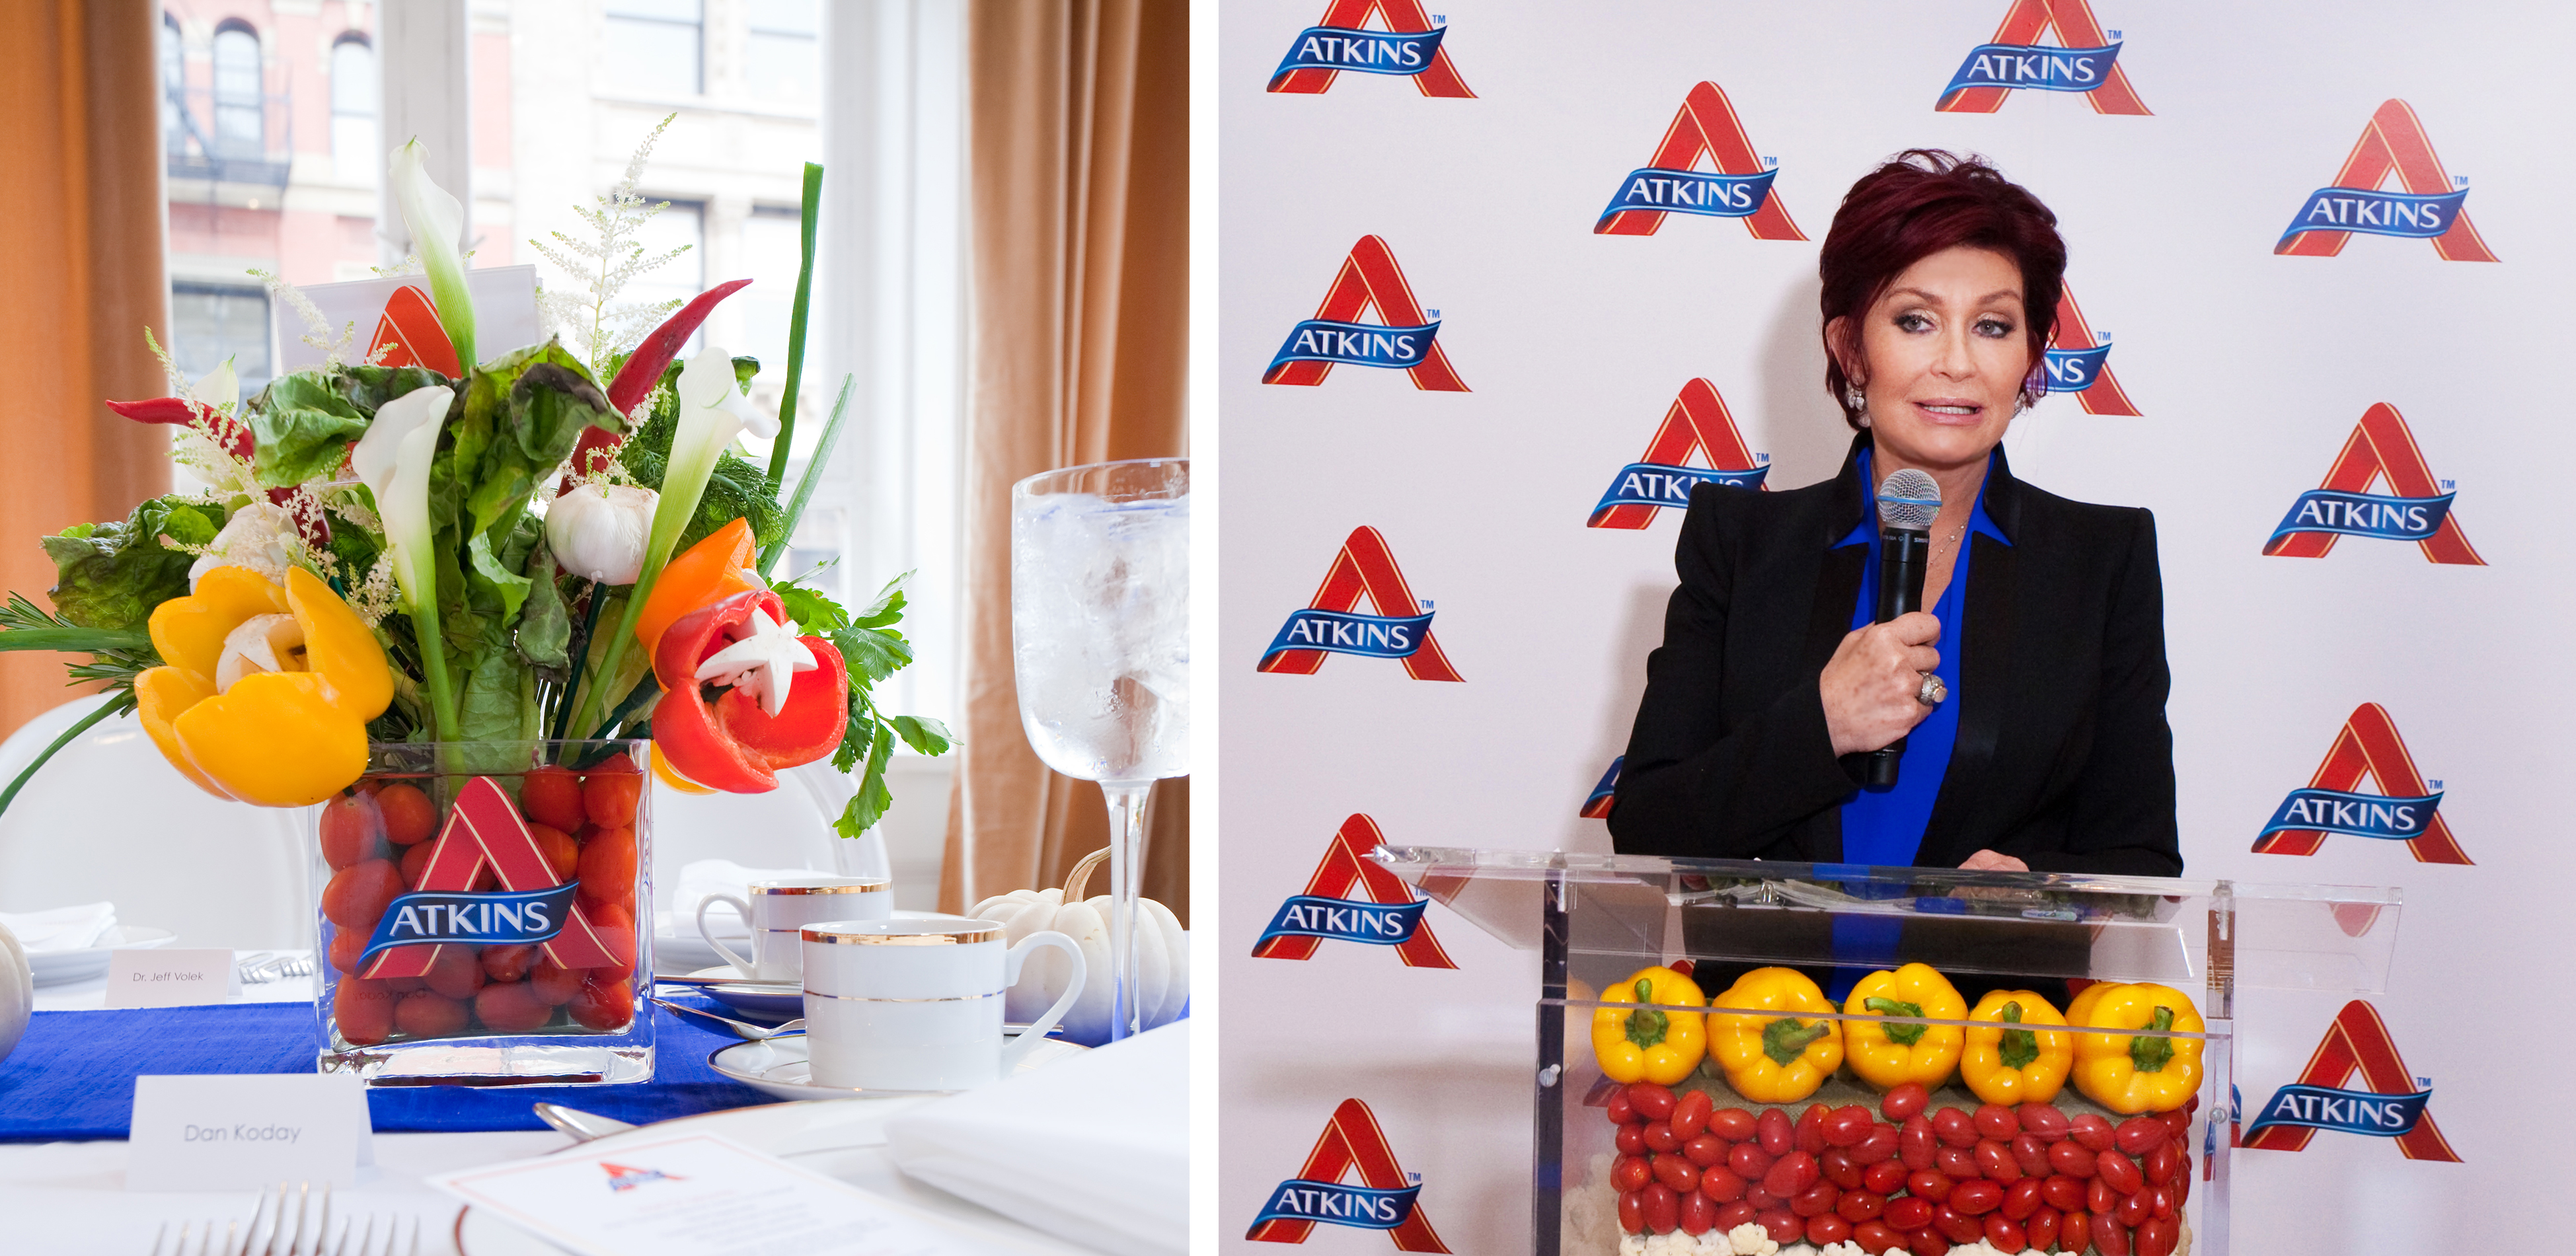 Sharon Osbourne for Atkins Foods